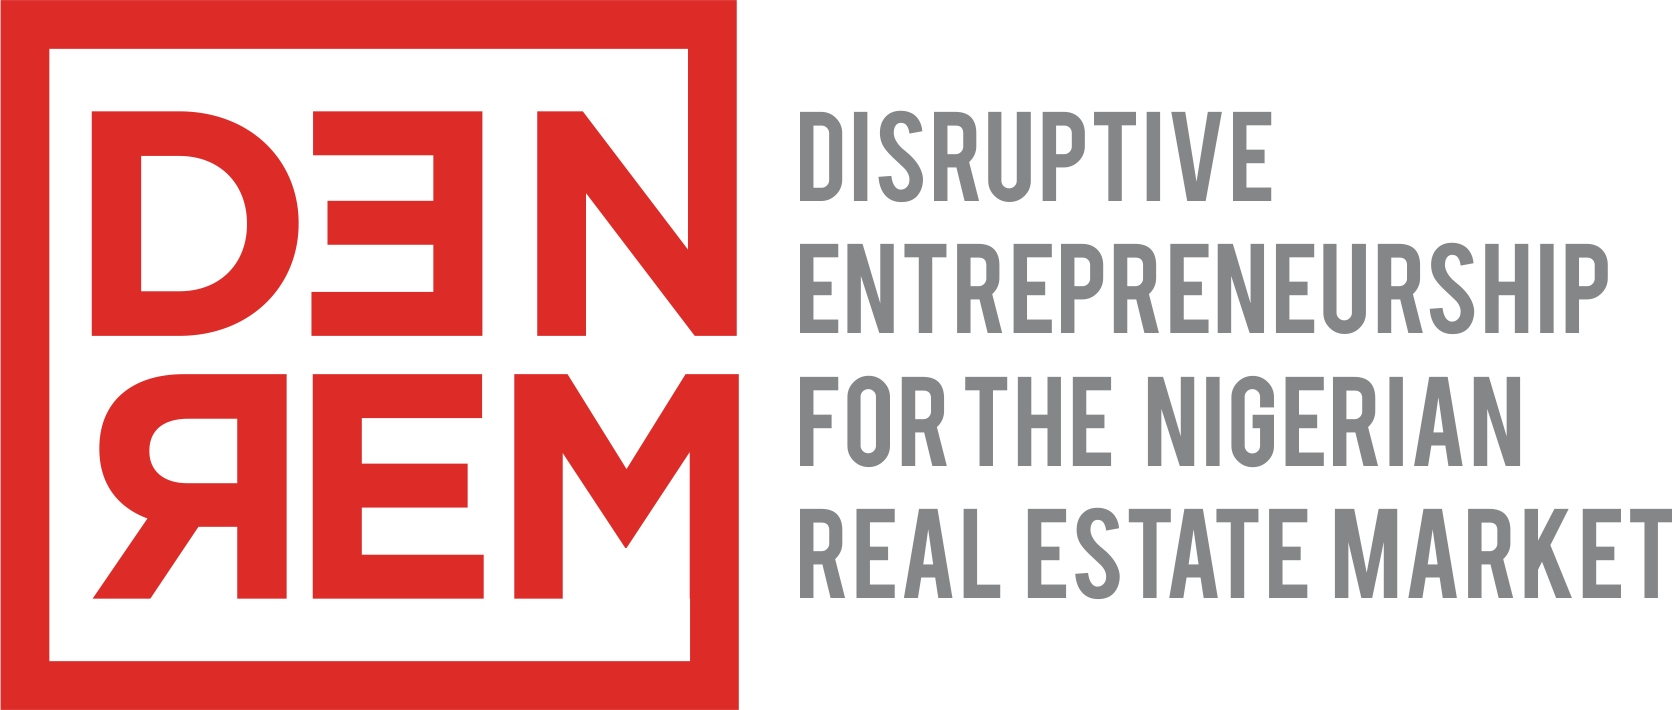 Disruptive Entrepreneurship For The Nigerian Real Estate Market